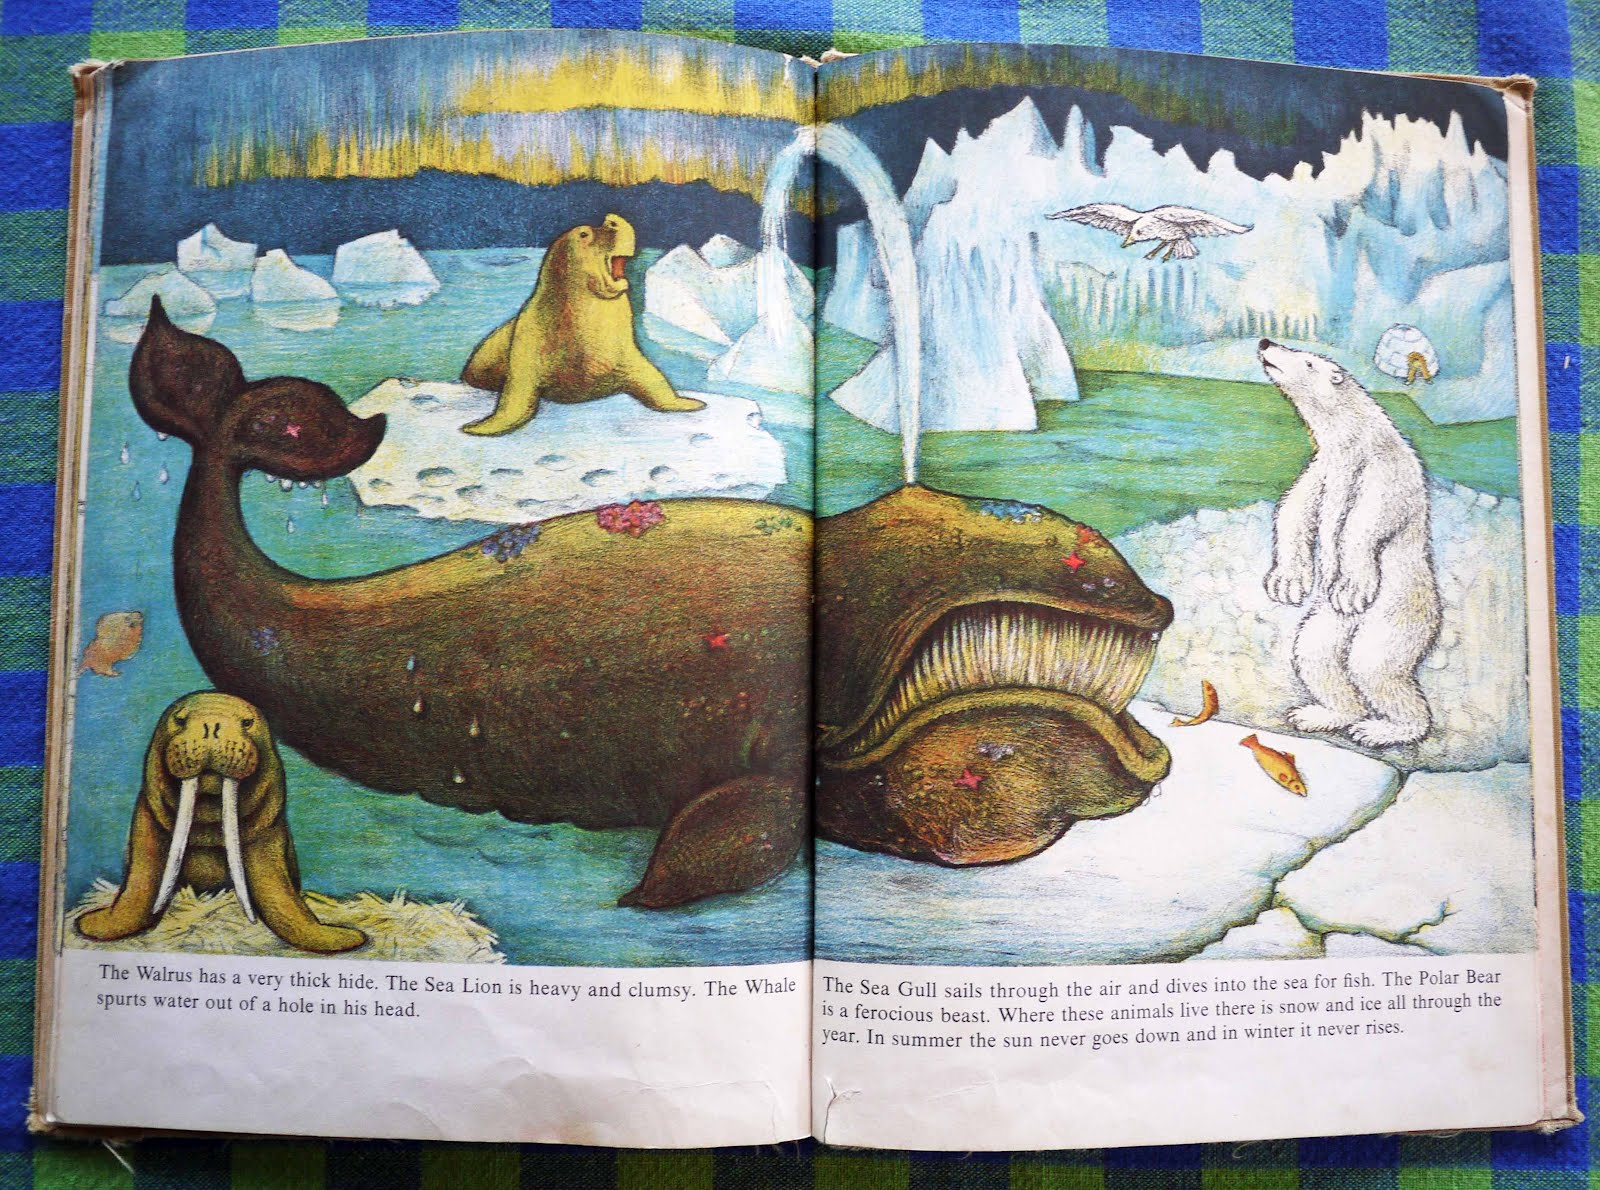 Vintage Kids' Books My Kid Loves: Animals Everywhere